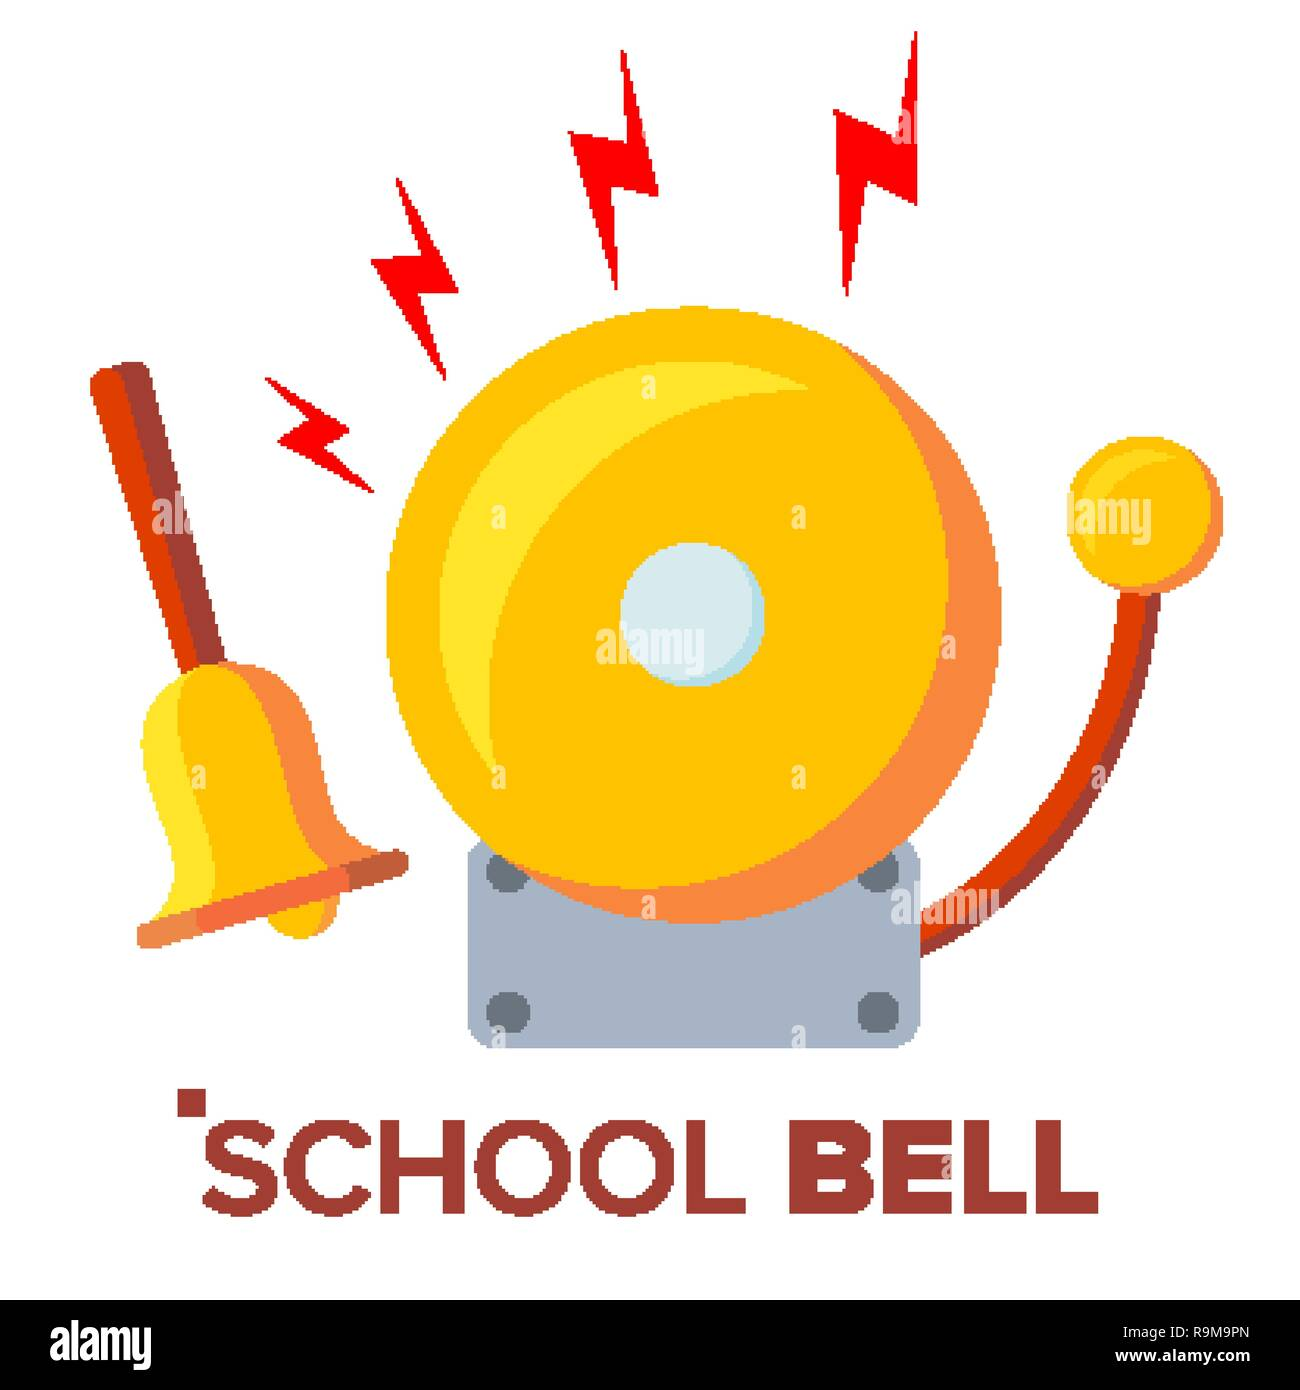 School Bell, Ring Vector. Ringing Classic Electric Bell And Hand Gold Metal Ring Isolated Cartoon Illustration - Stock Image